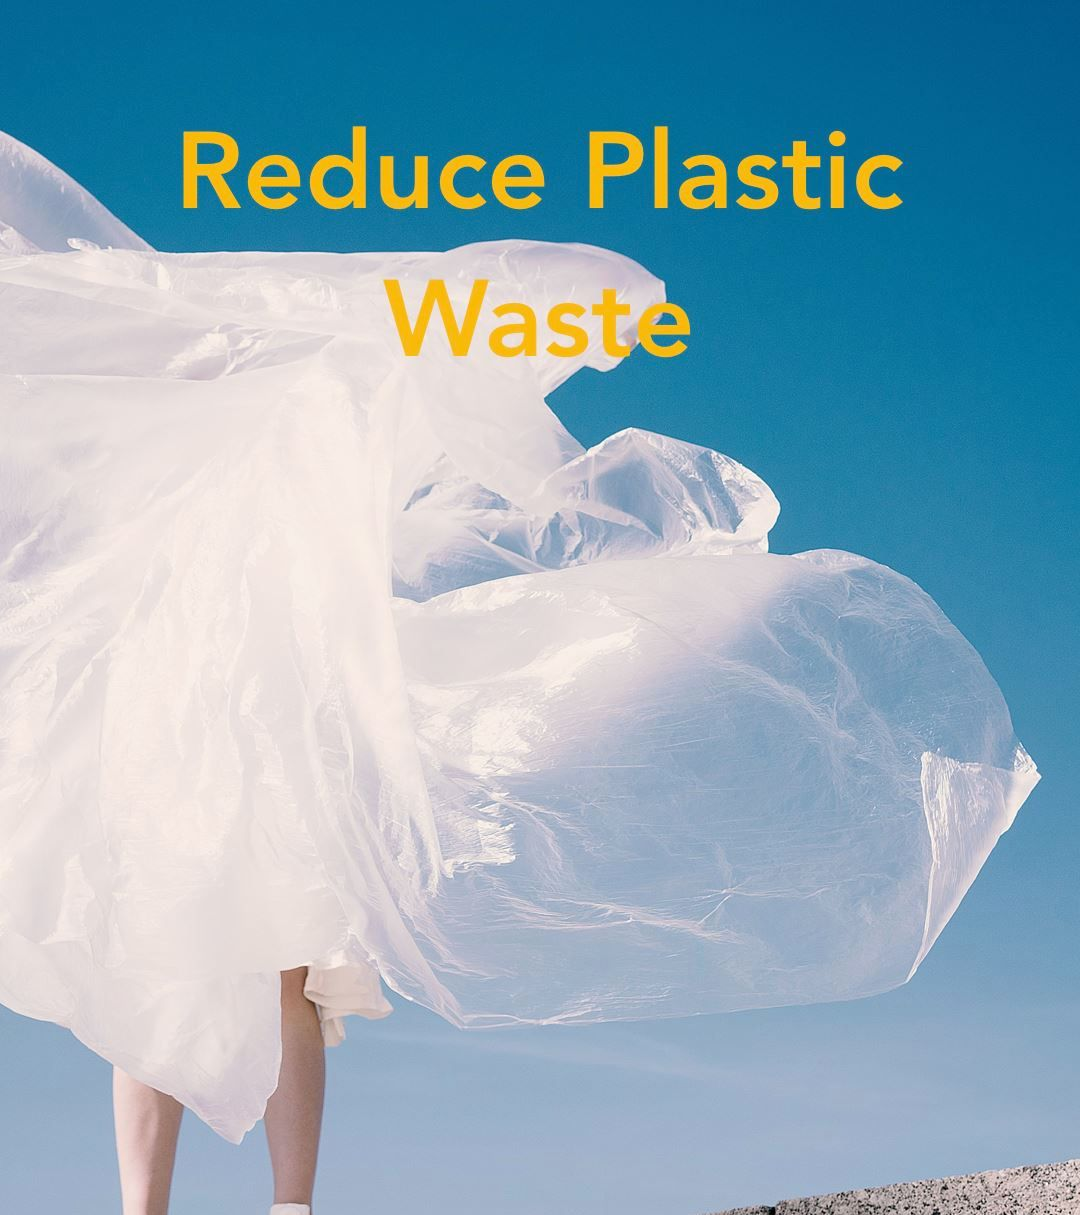 Reduce Plastic Waste - UK companies have some cool innovations to reduce plastic waste!